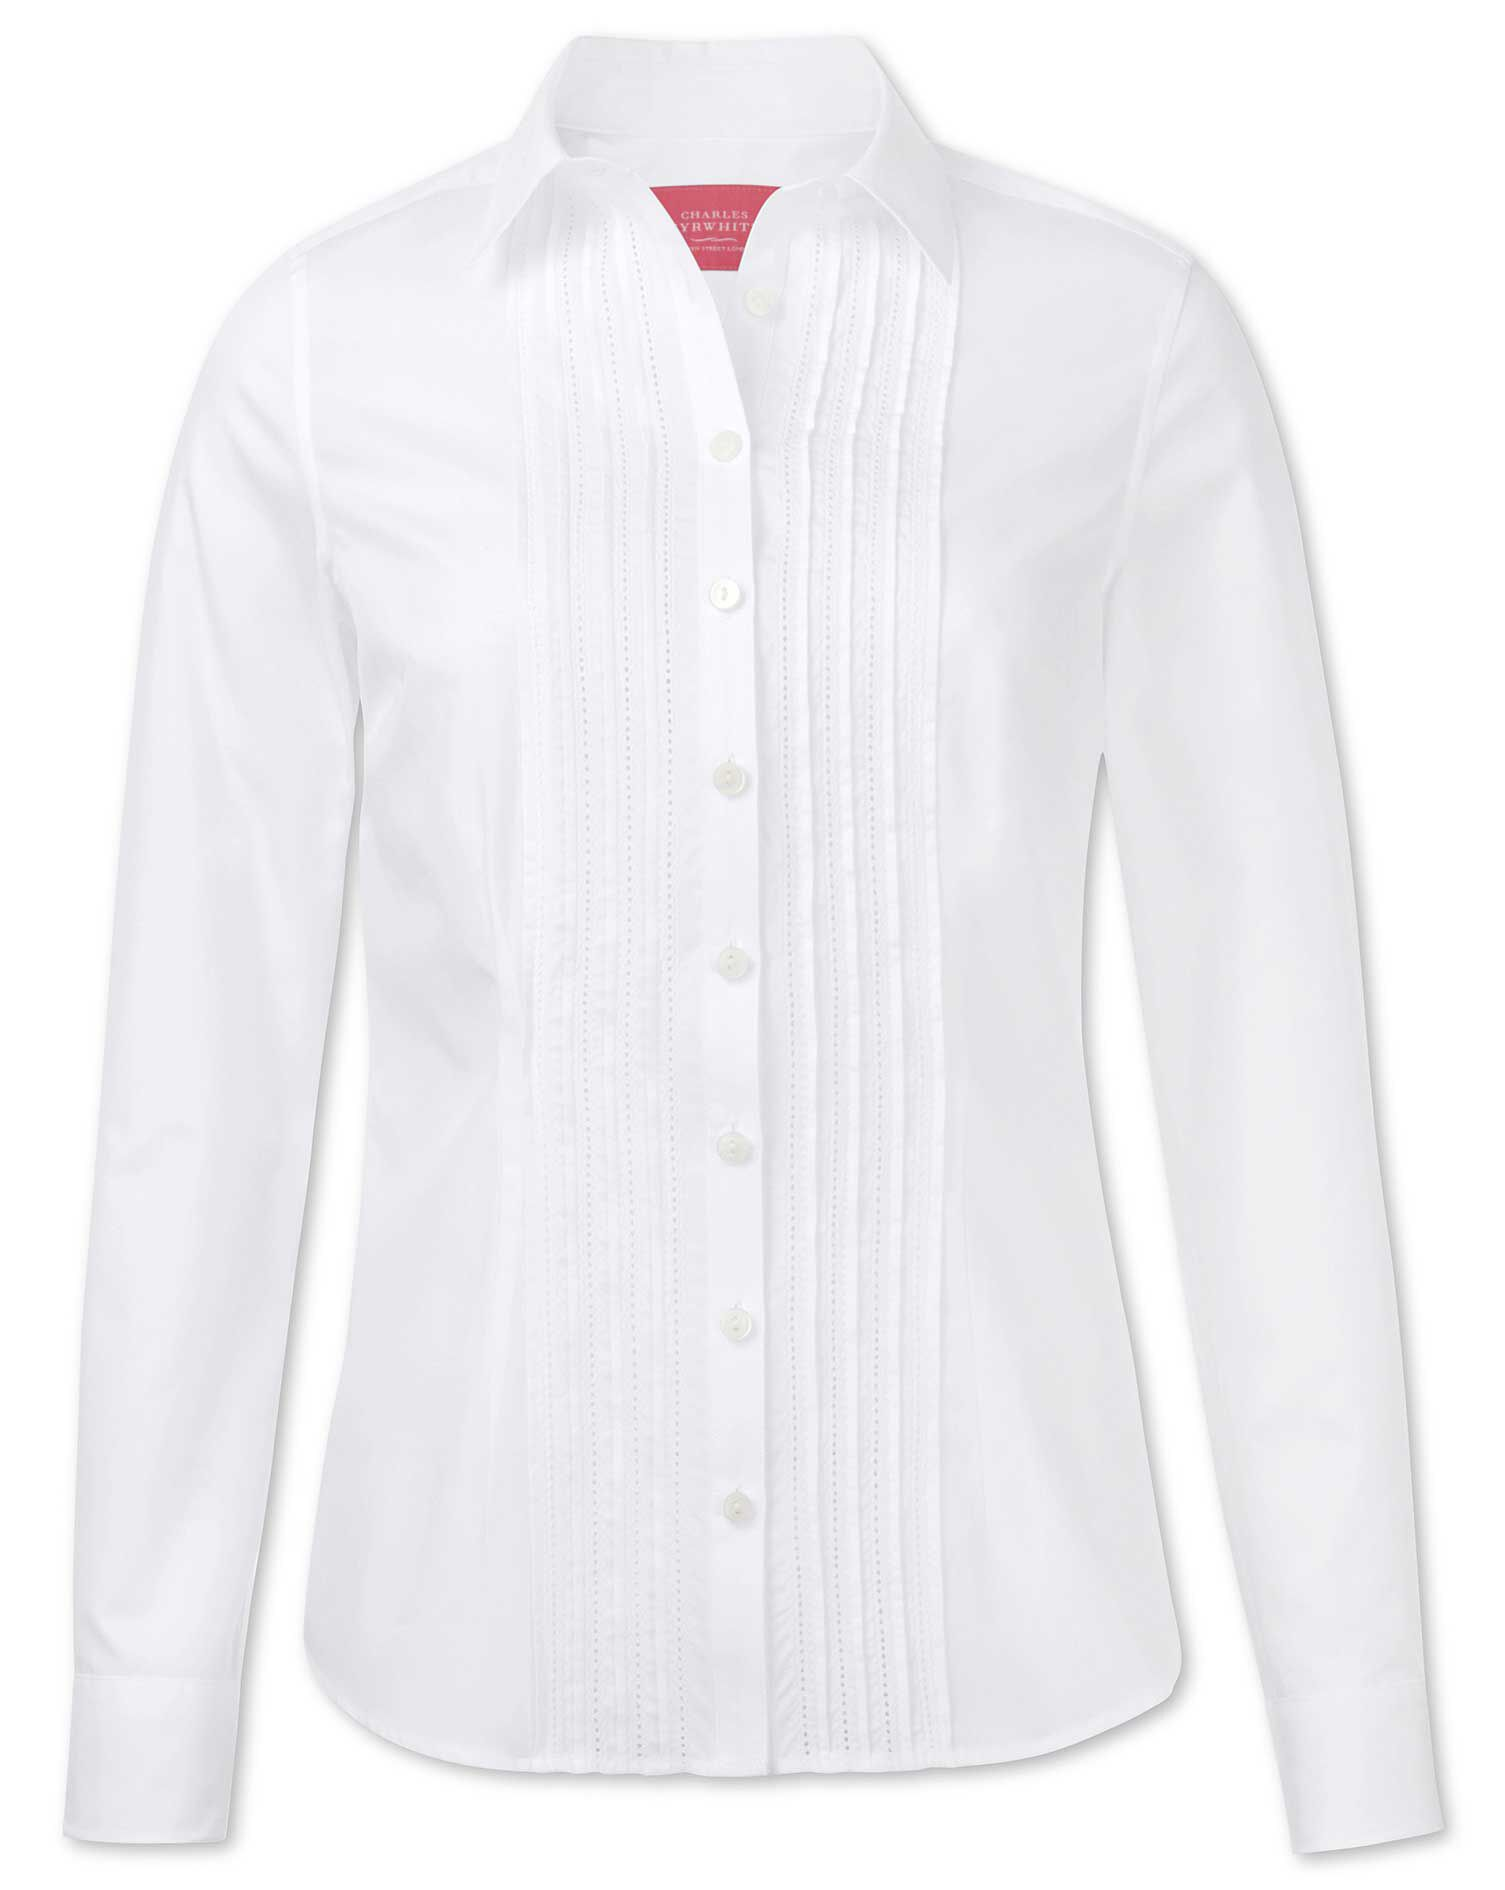 Women's Semi-Fitted Pintuck White Essential Cotton Shirt Size 14 by Charles Tyrwhitt